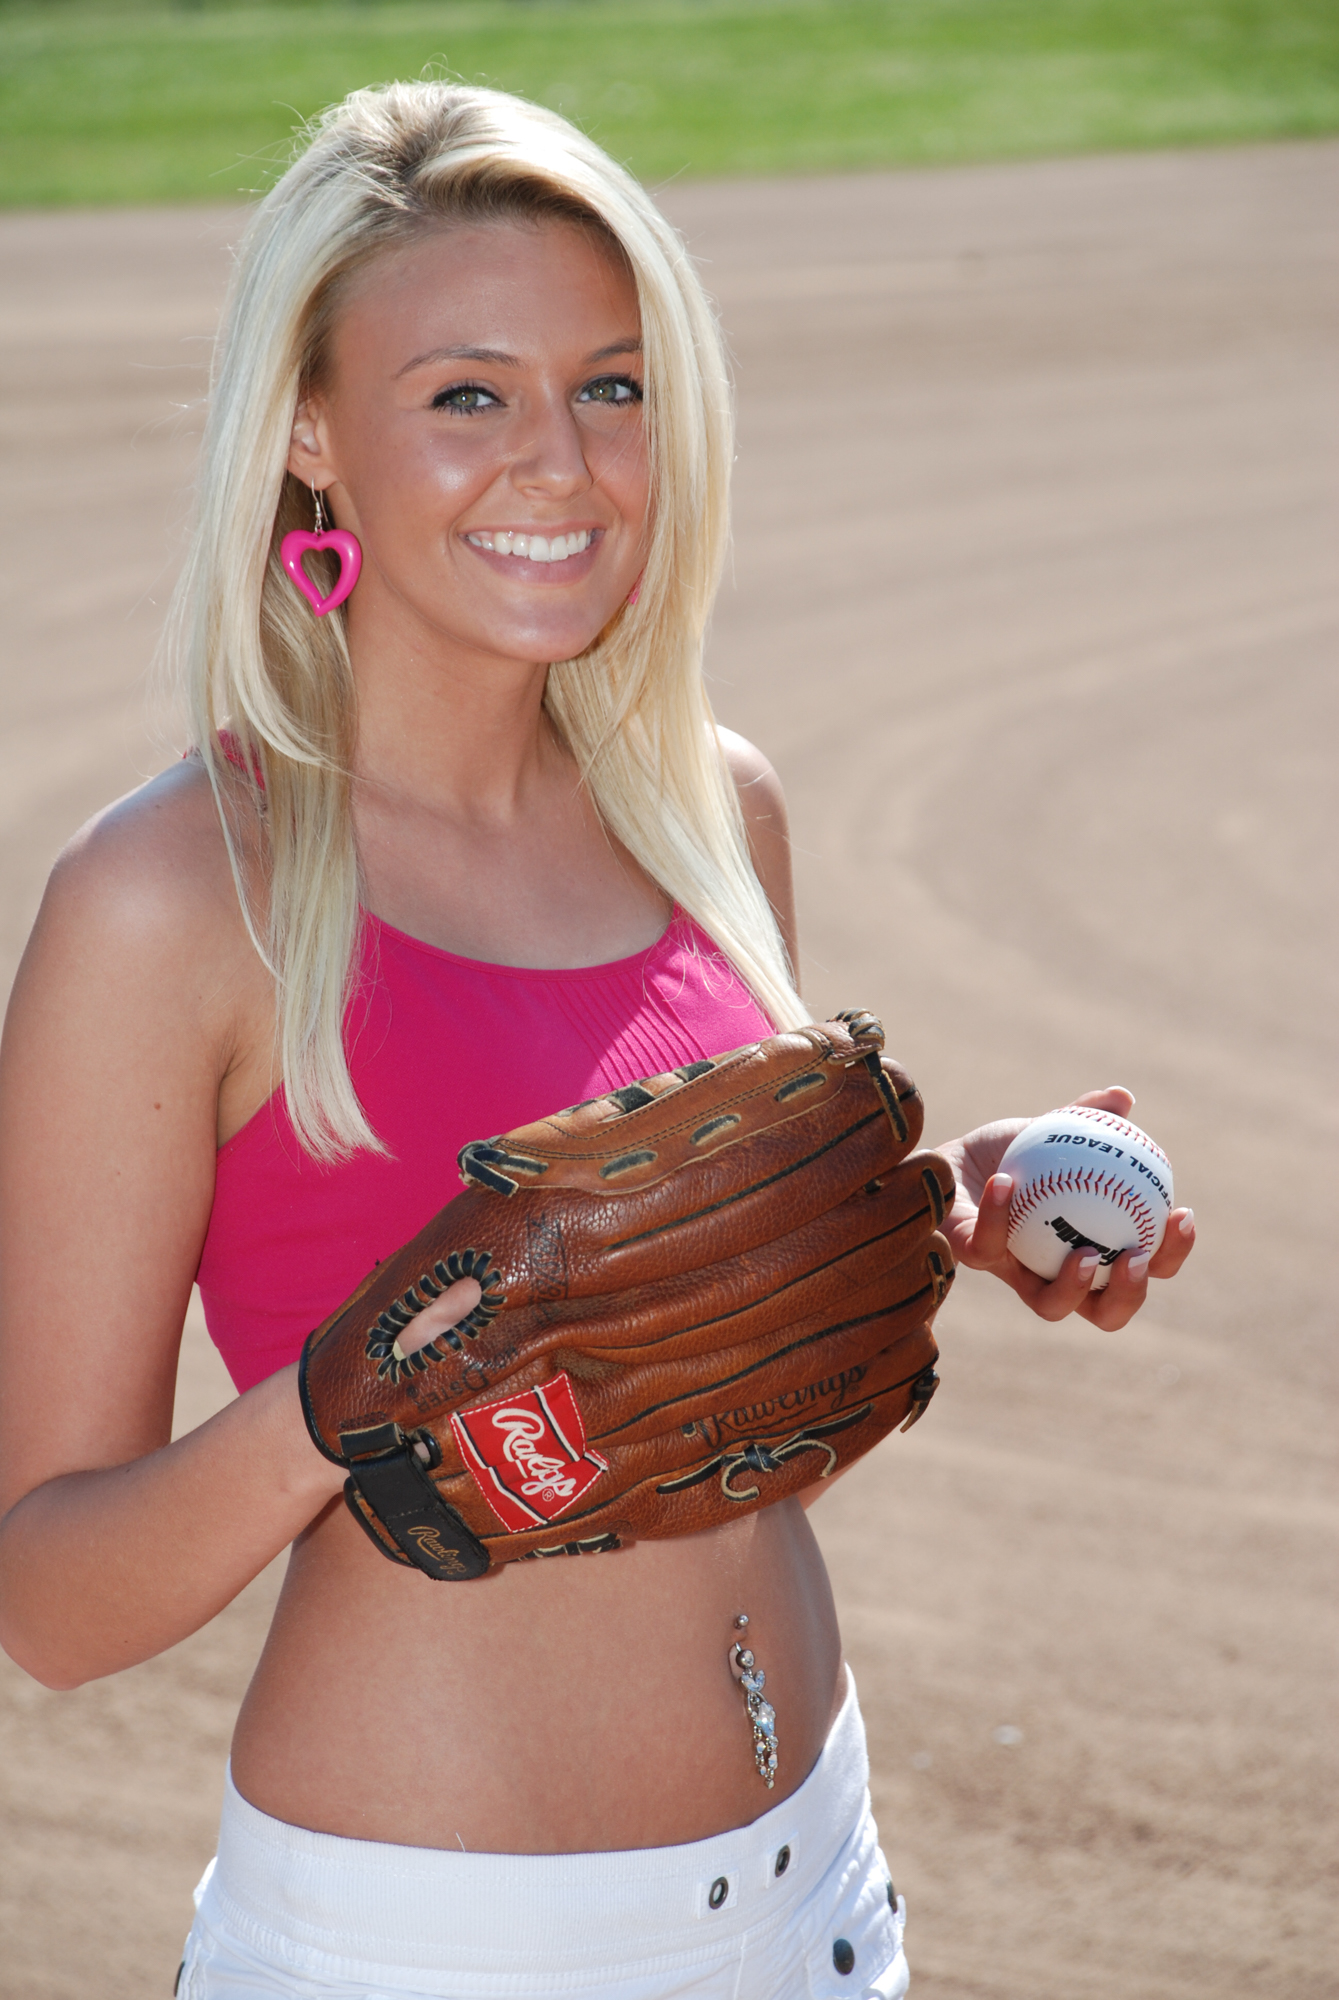 Beautiful+Baseball_080621_12139.JPG